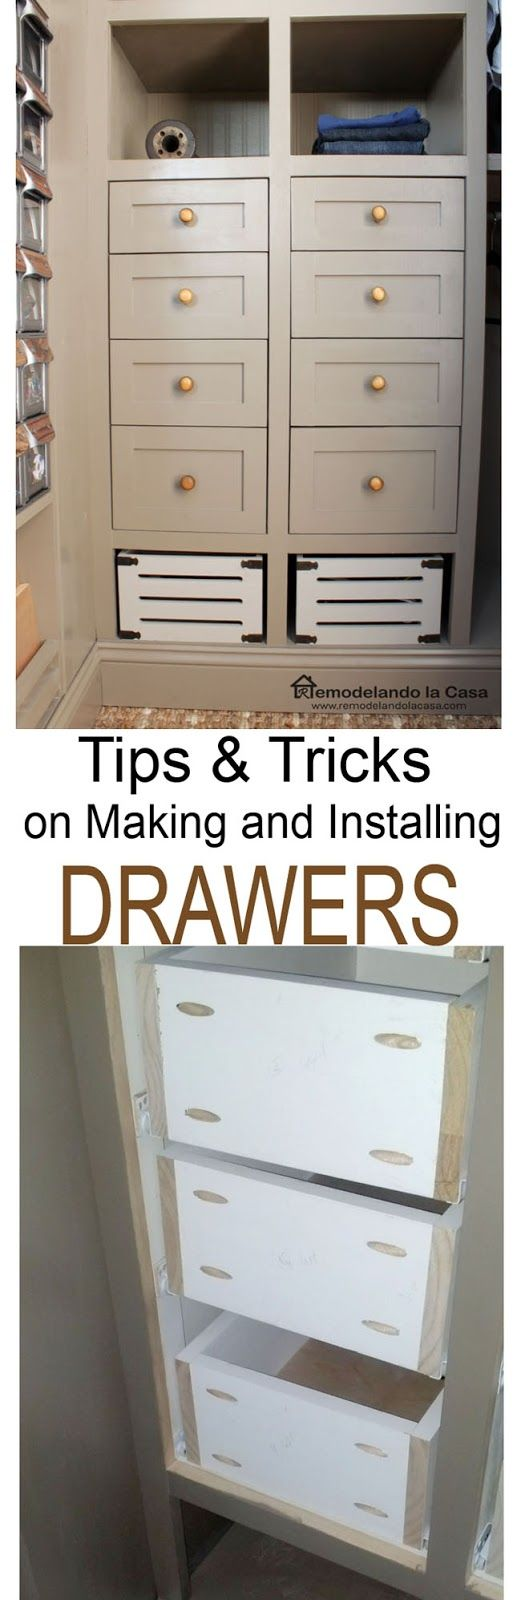 Making and installing drawers Very good info on how to build drawers and install slides!